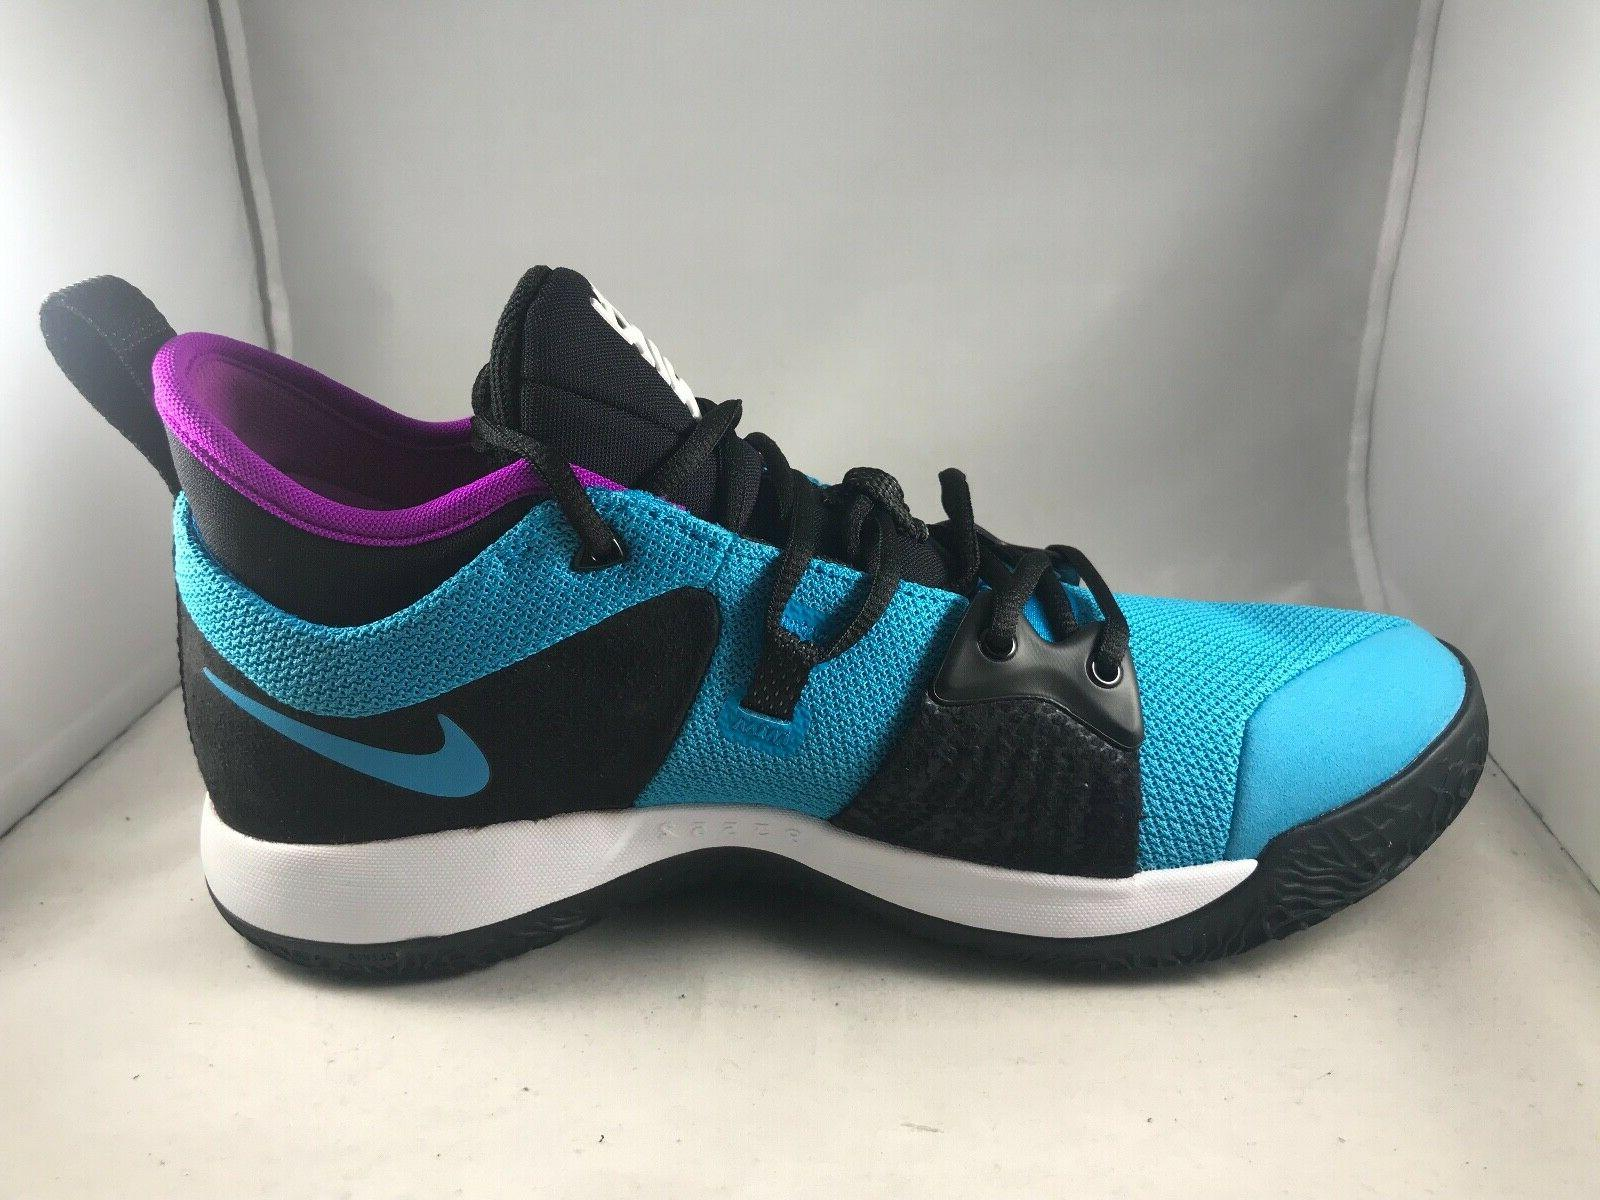 Nike Lagoon Shoes 402 Mens Size